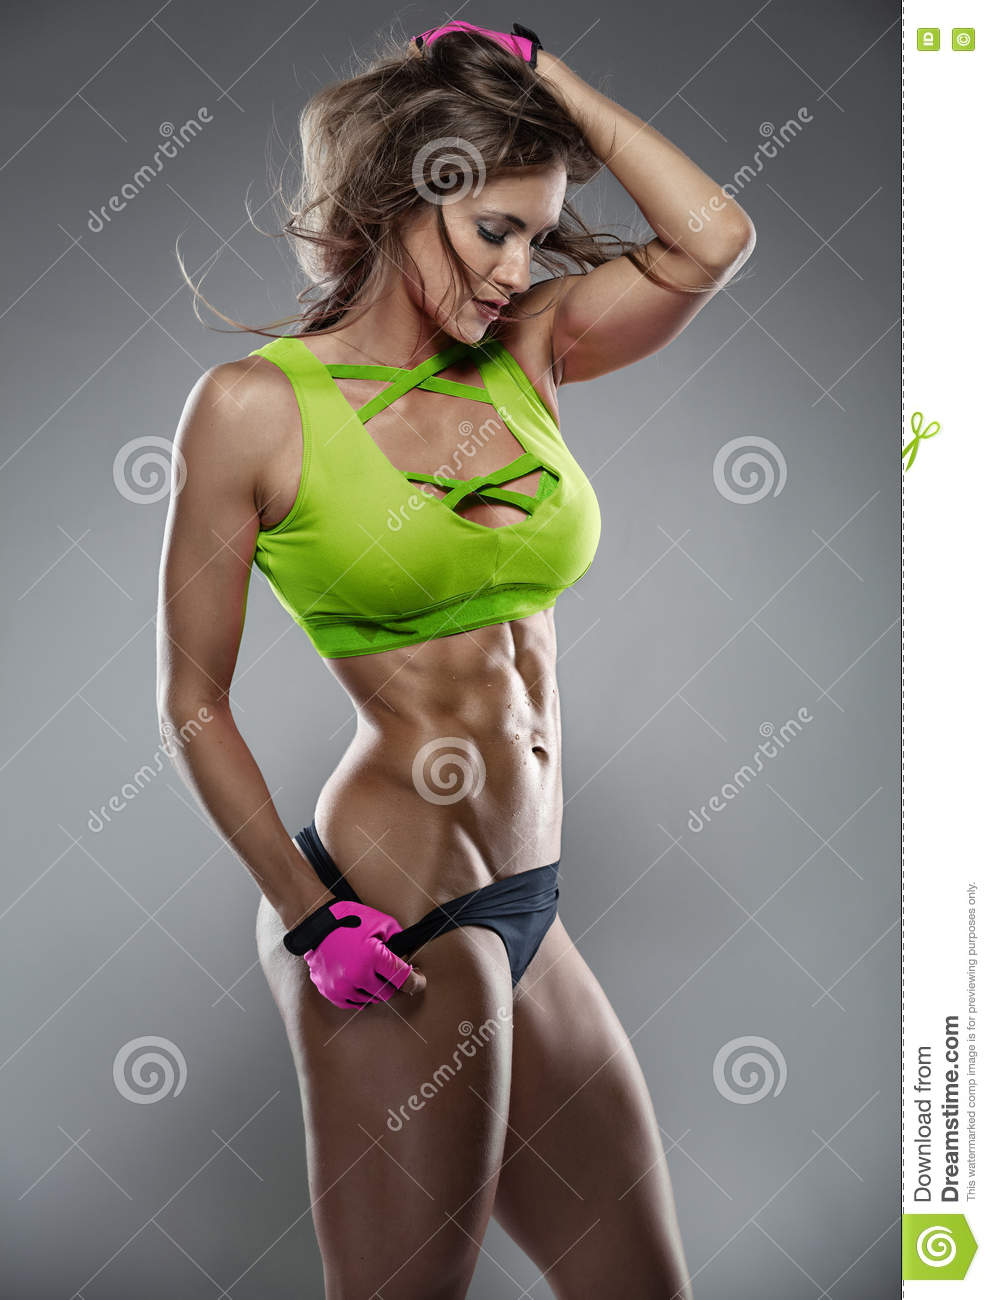 Nice fitness woman showing abdominal muscles